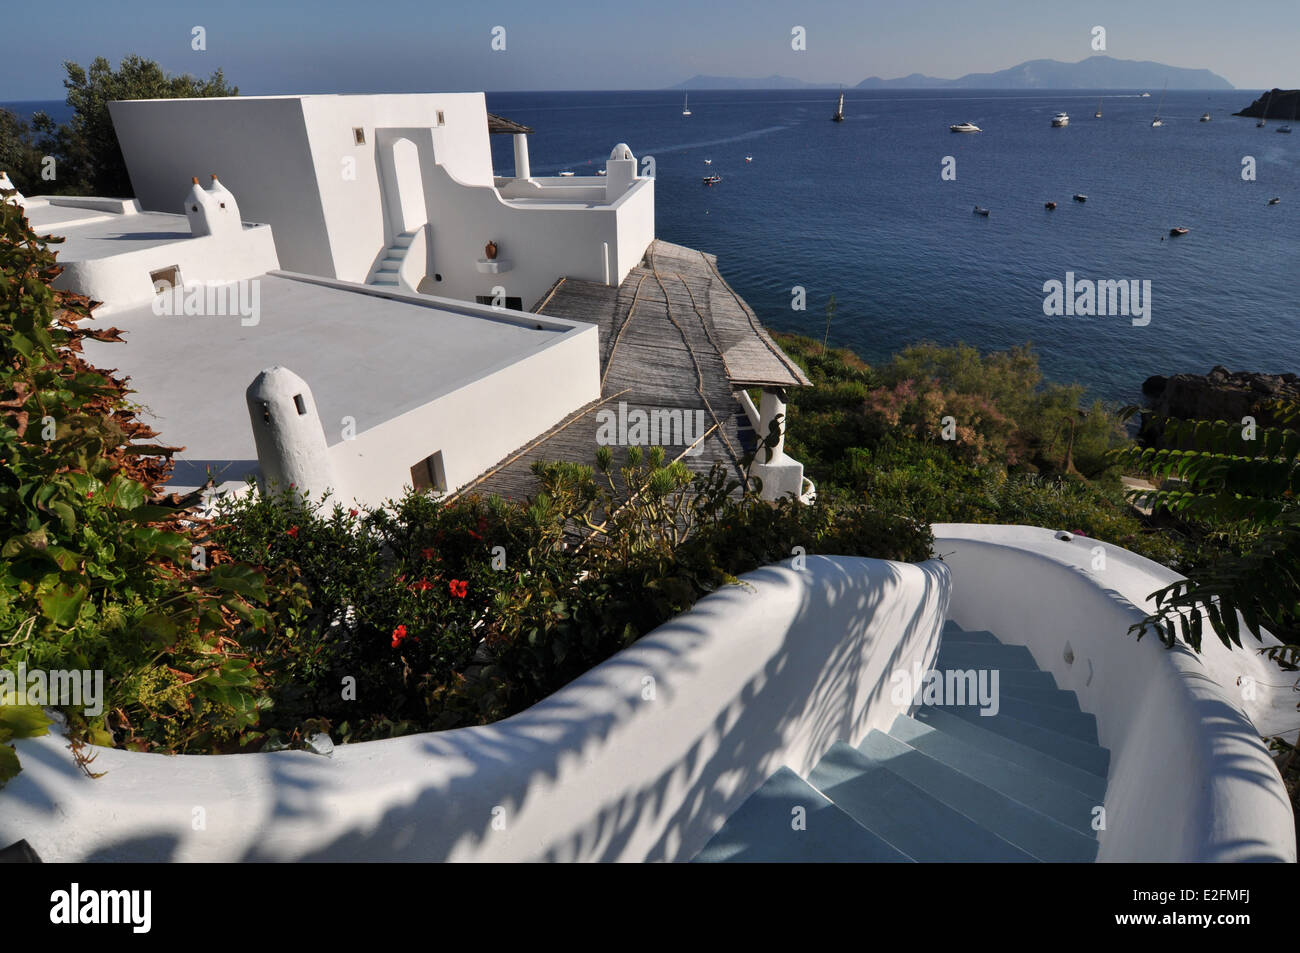 Isole Eolie o Lipari e Panarea house, Lipari in background Immagini Stock